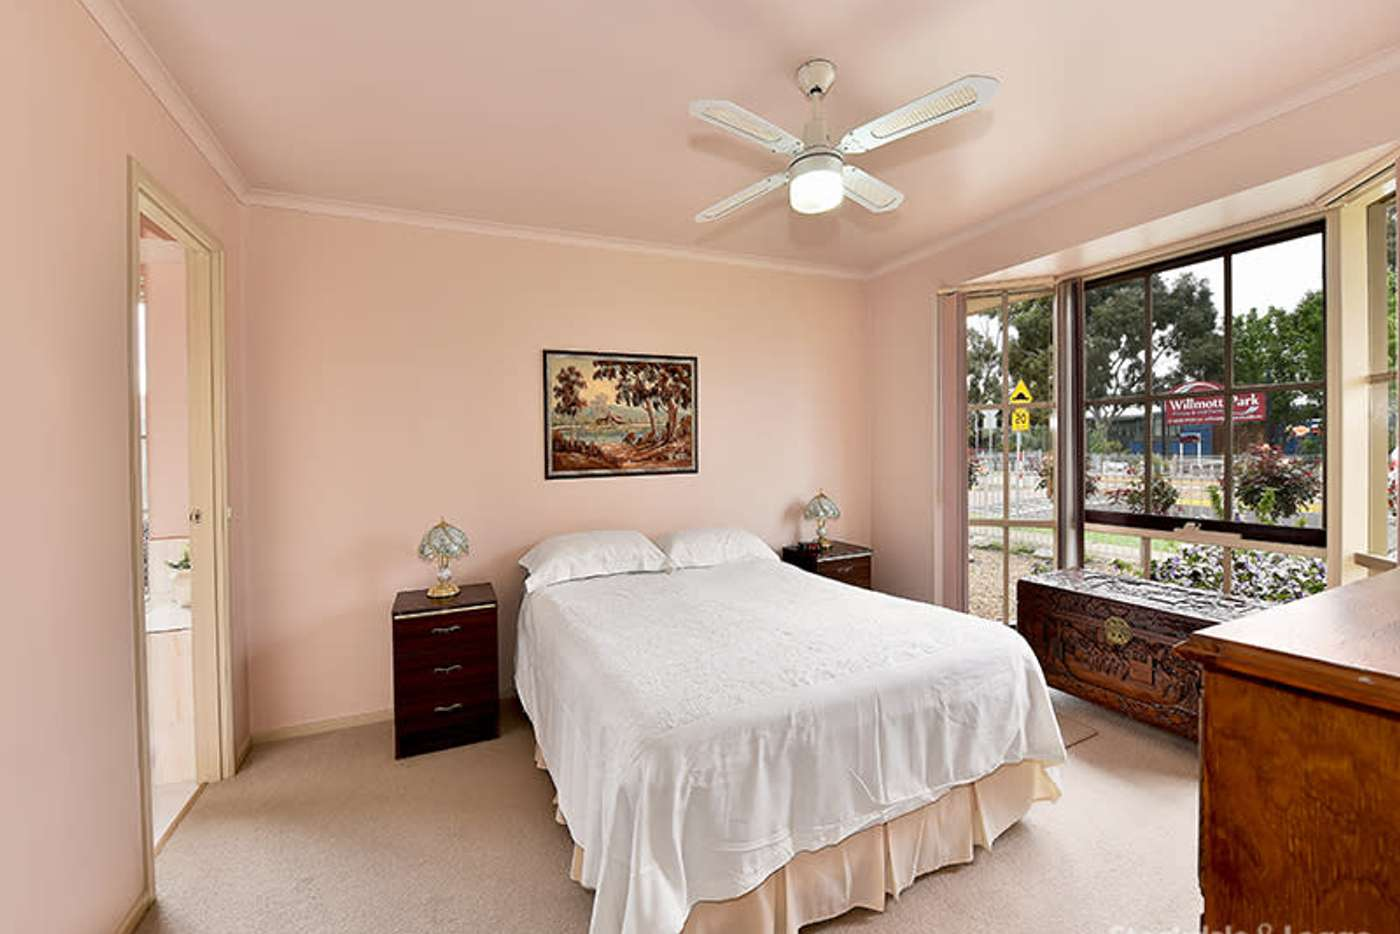 Sixth view of Homely house listing, 57 Dorchester Street, Craigieburn VIC 3064